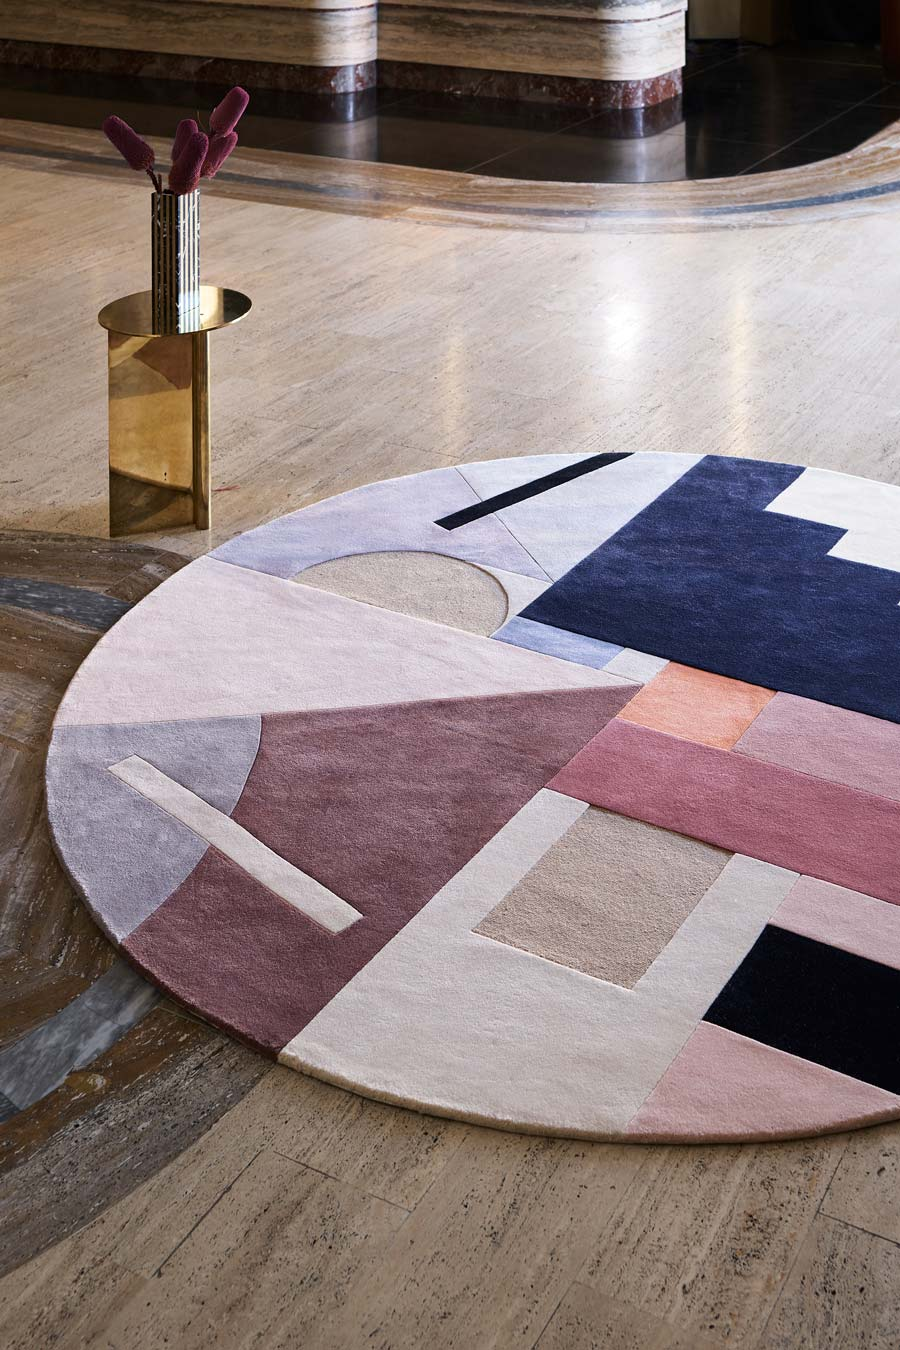 location shot of delaunay rug by greg natale